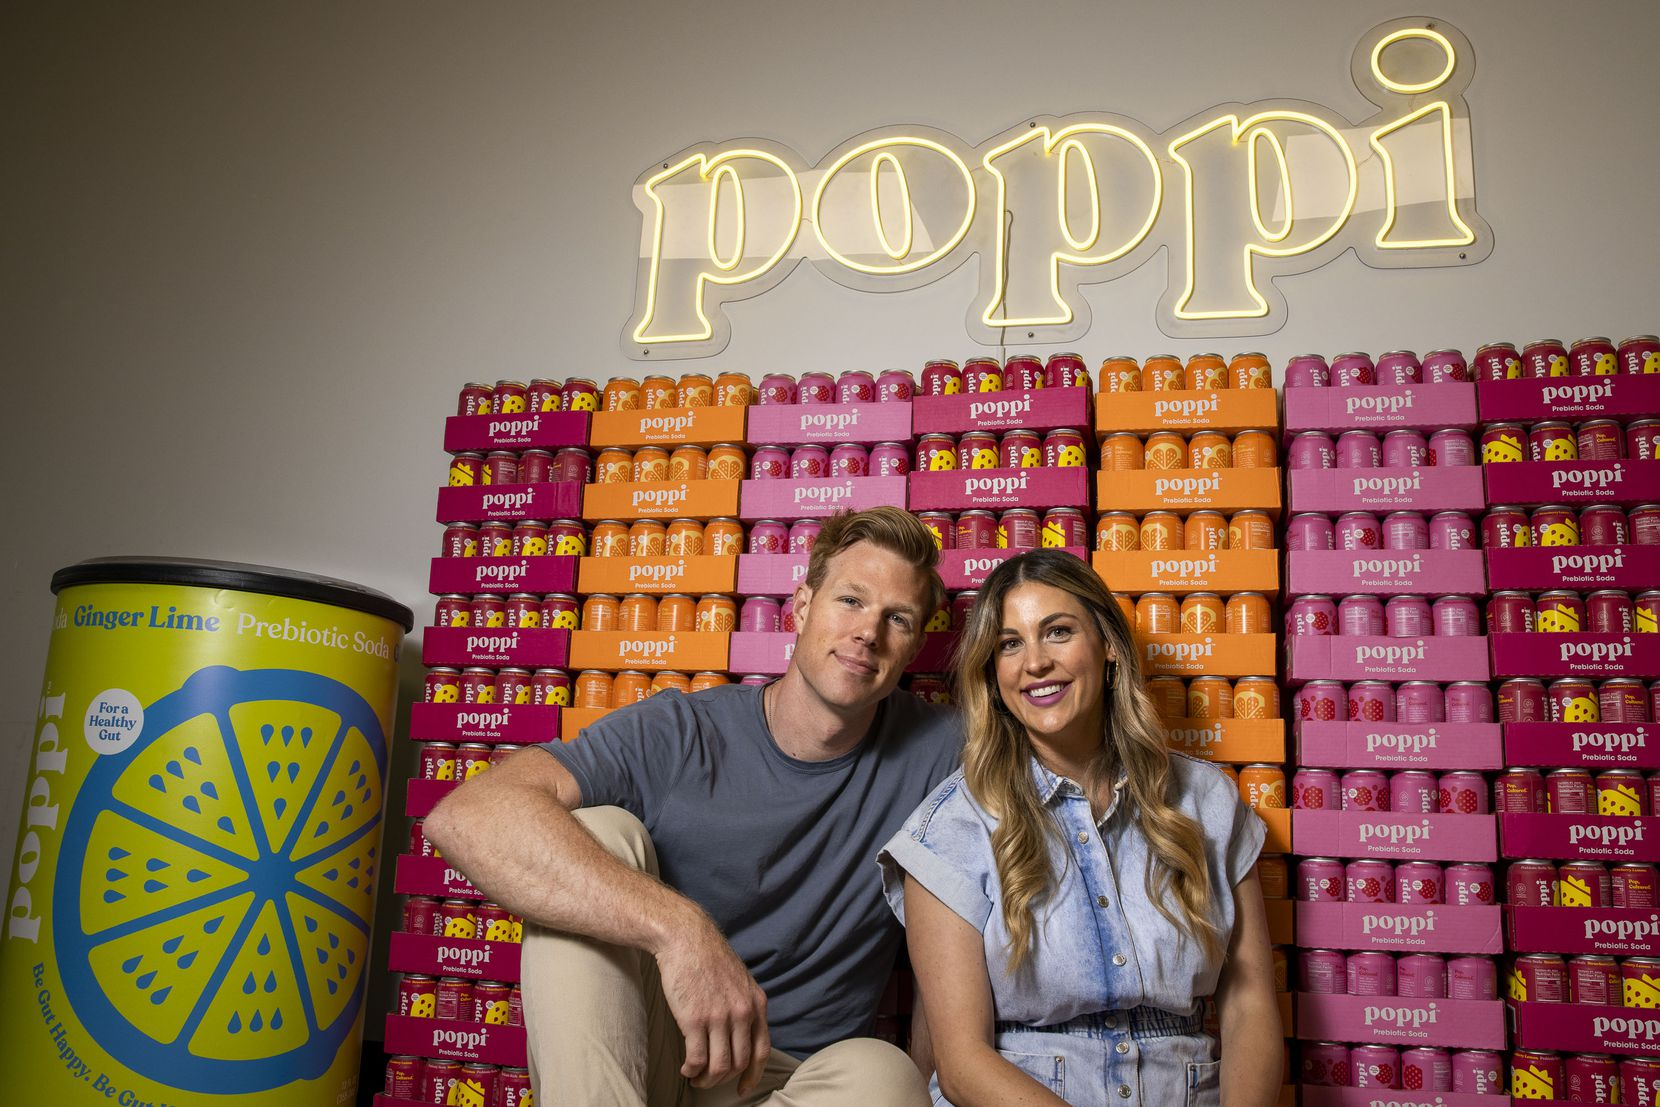 Husband and wife team Stephen, left, and Allison Ellsworth pose for a portrait at the poppi office located in Dallas on Thursday, July 1, 2021. Poppi is a Dallas-based probiotic drink company that started out at local farmers markets and is now growing across the country. (Lynda M. González/The Dallas Morning News)